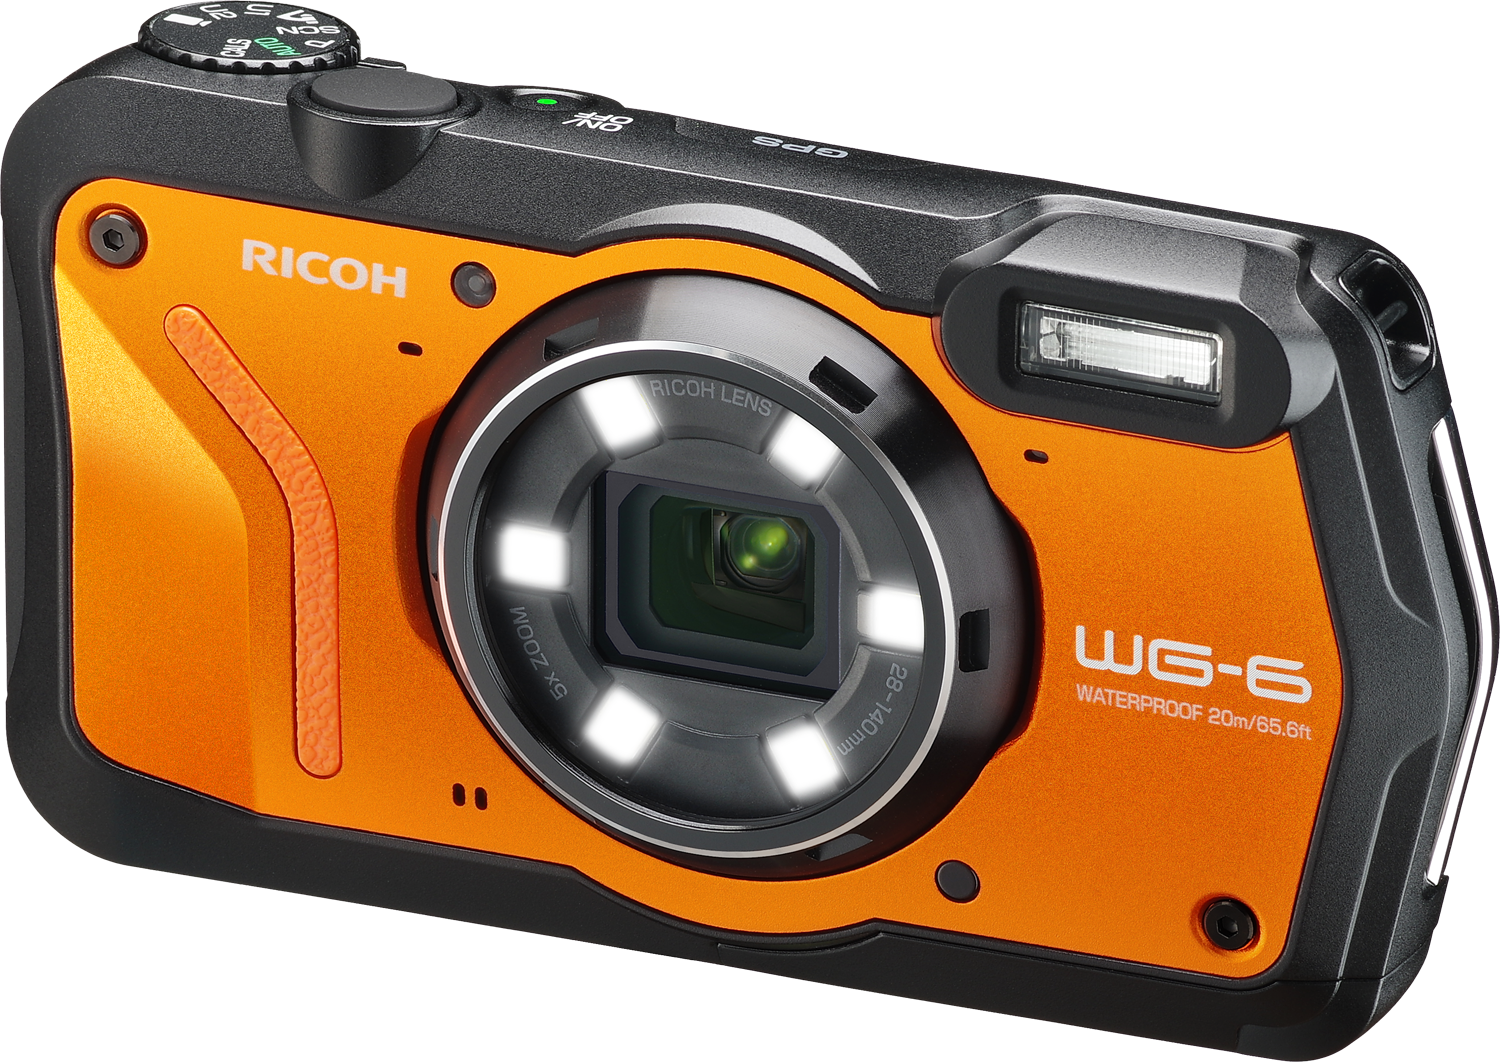 Ricoh WG-6: Digital Photography Review